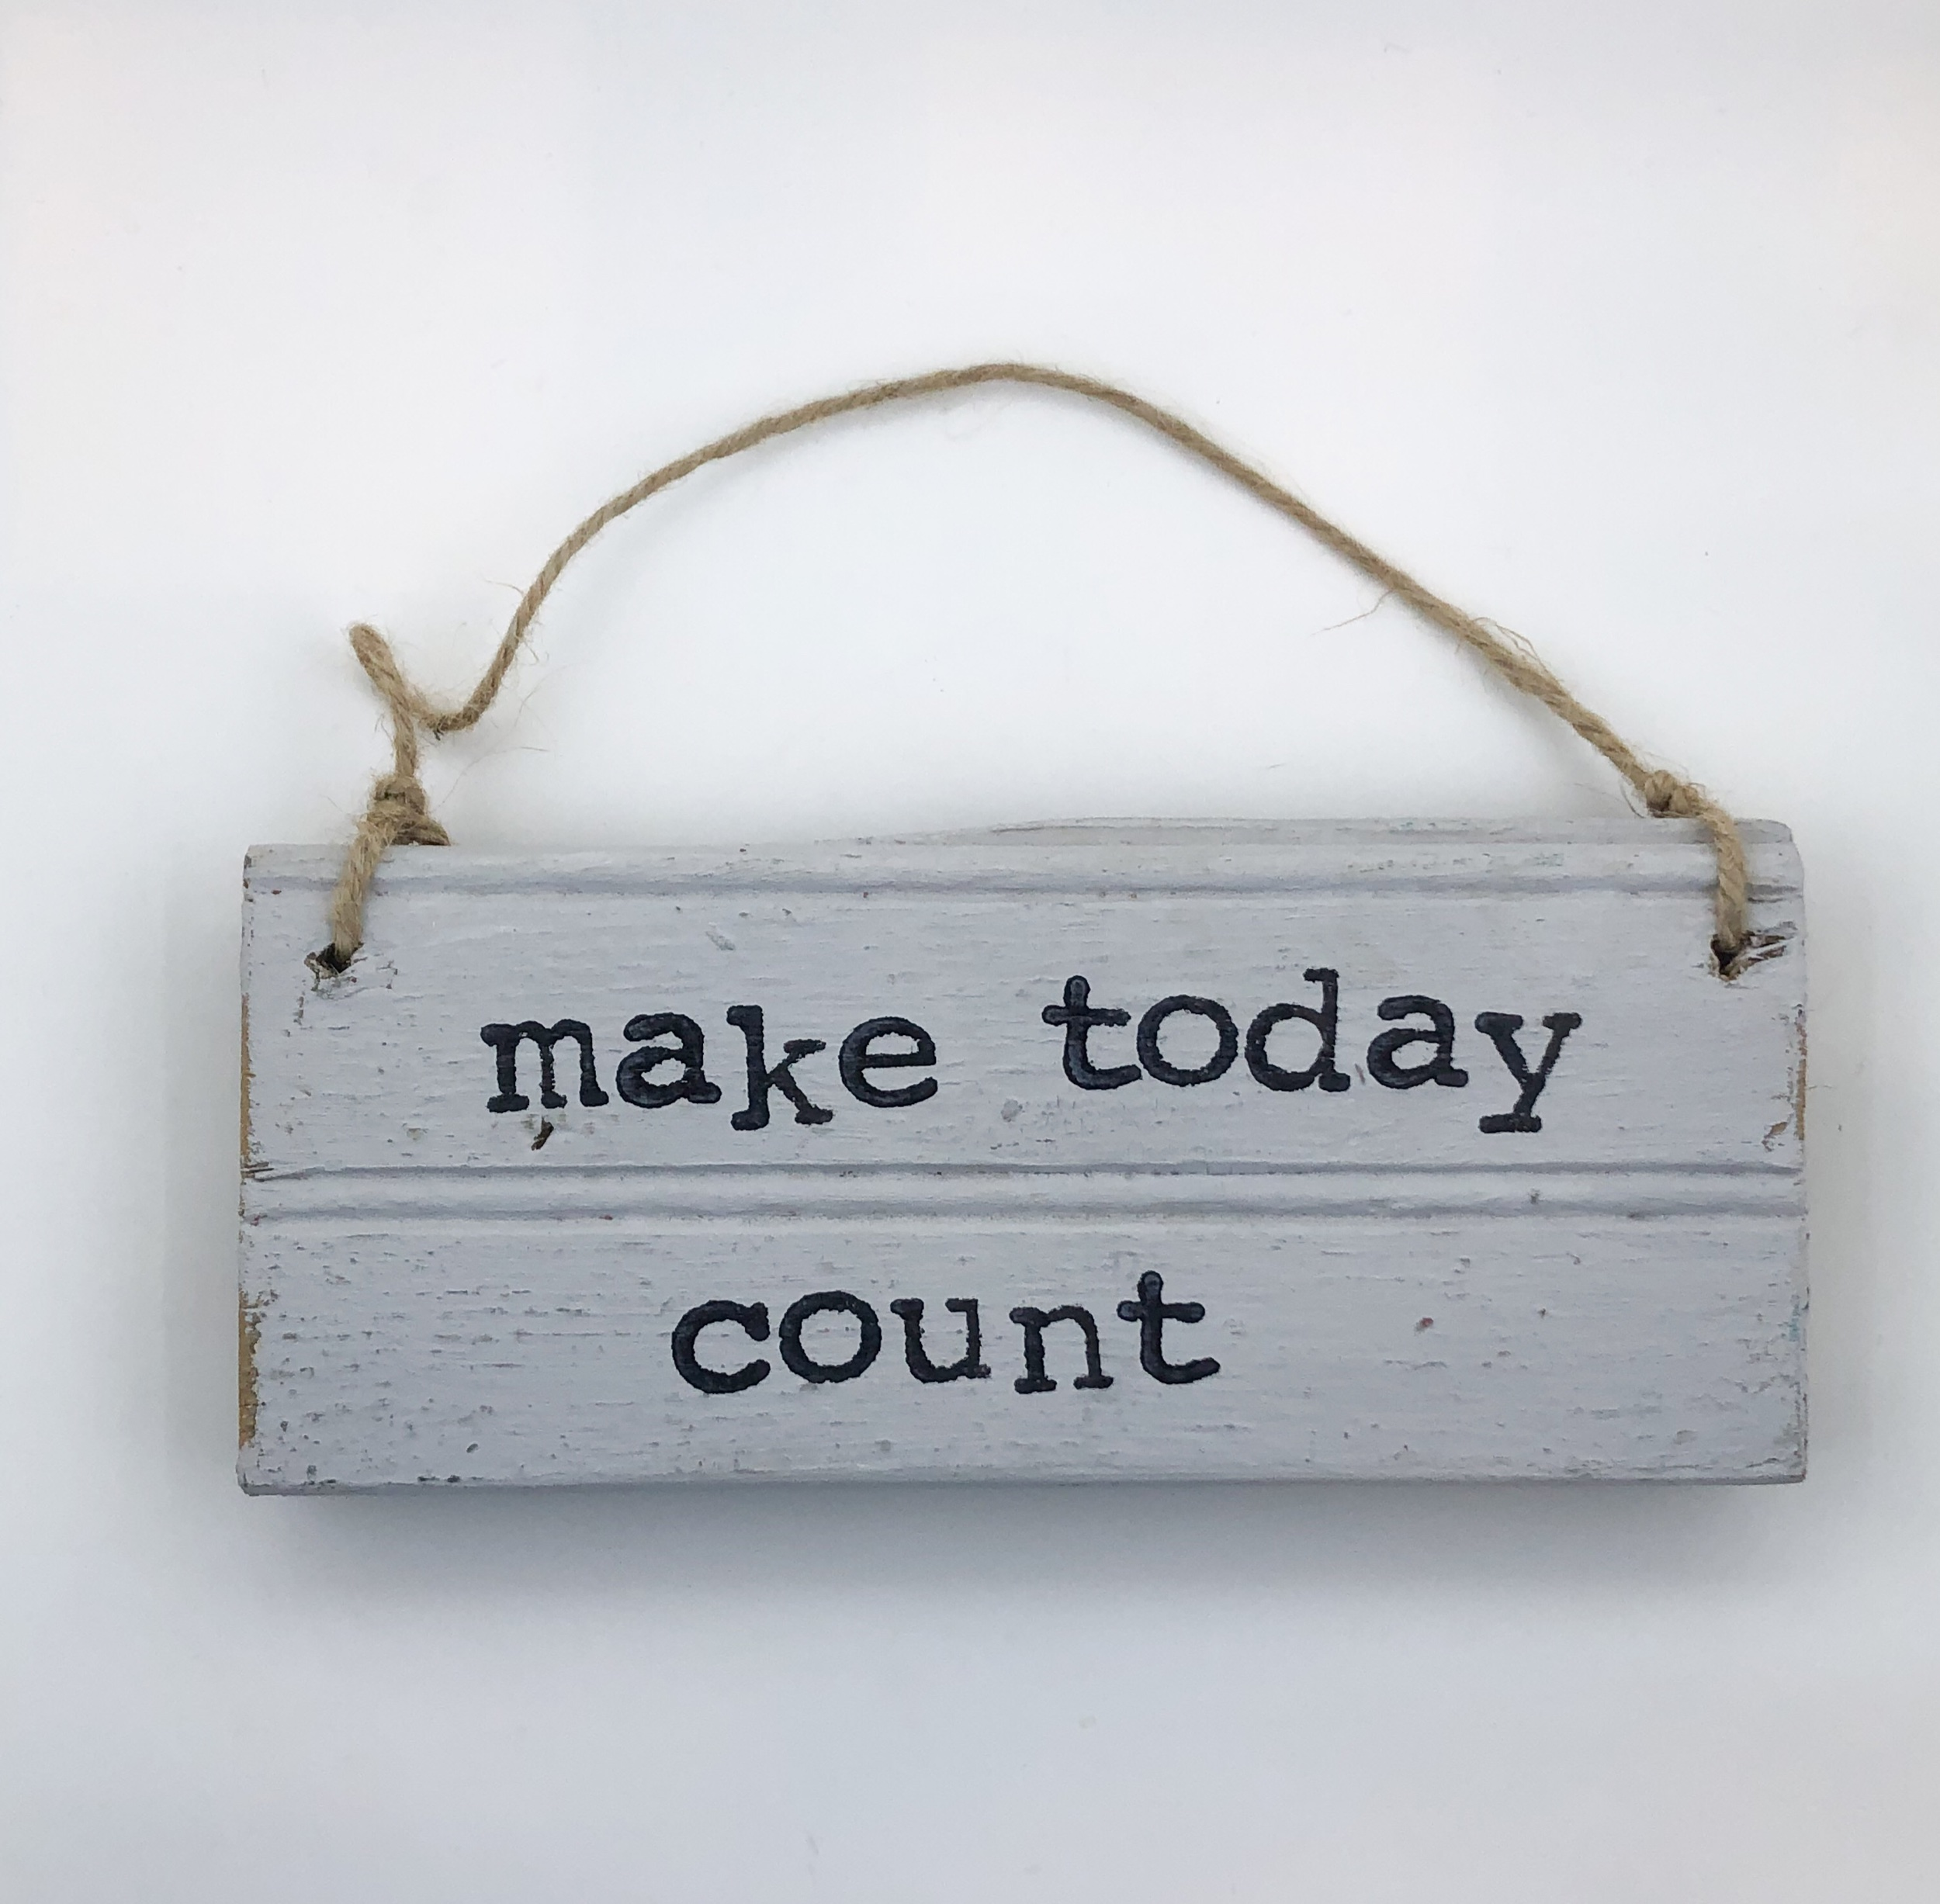 Make today count.gray sign.jpeg